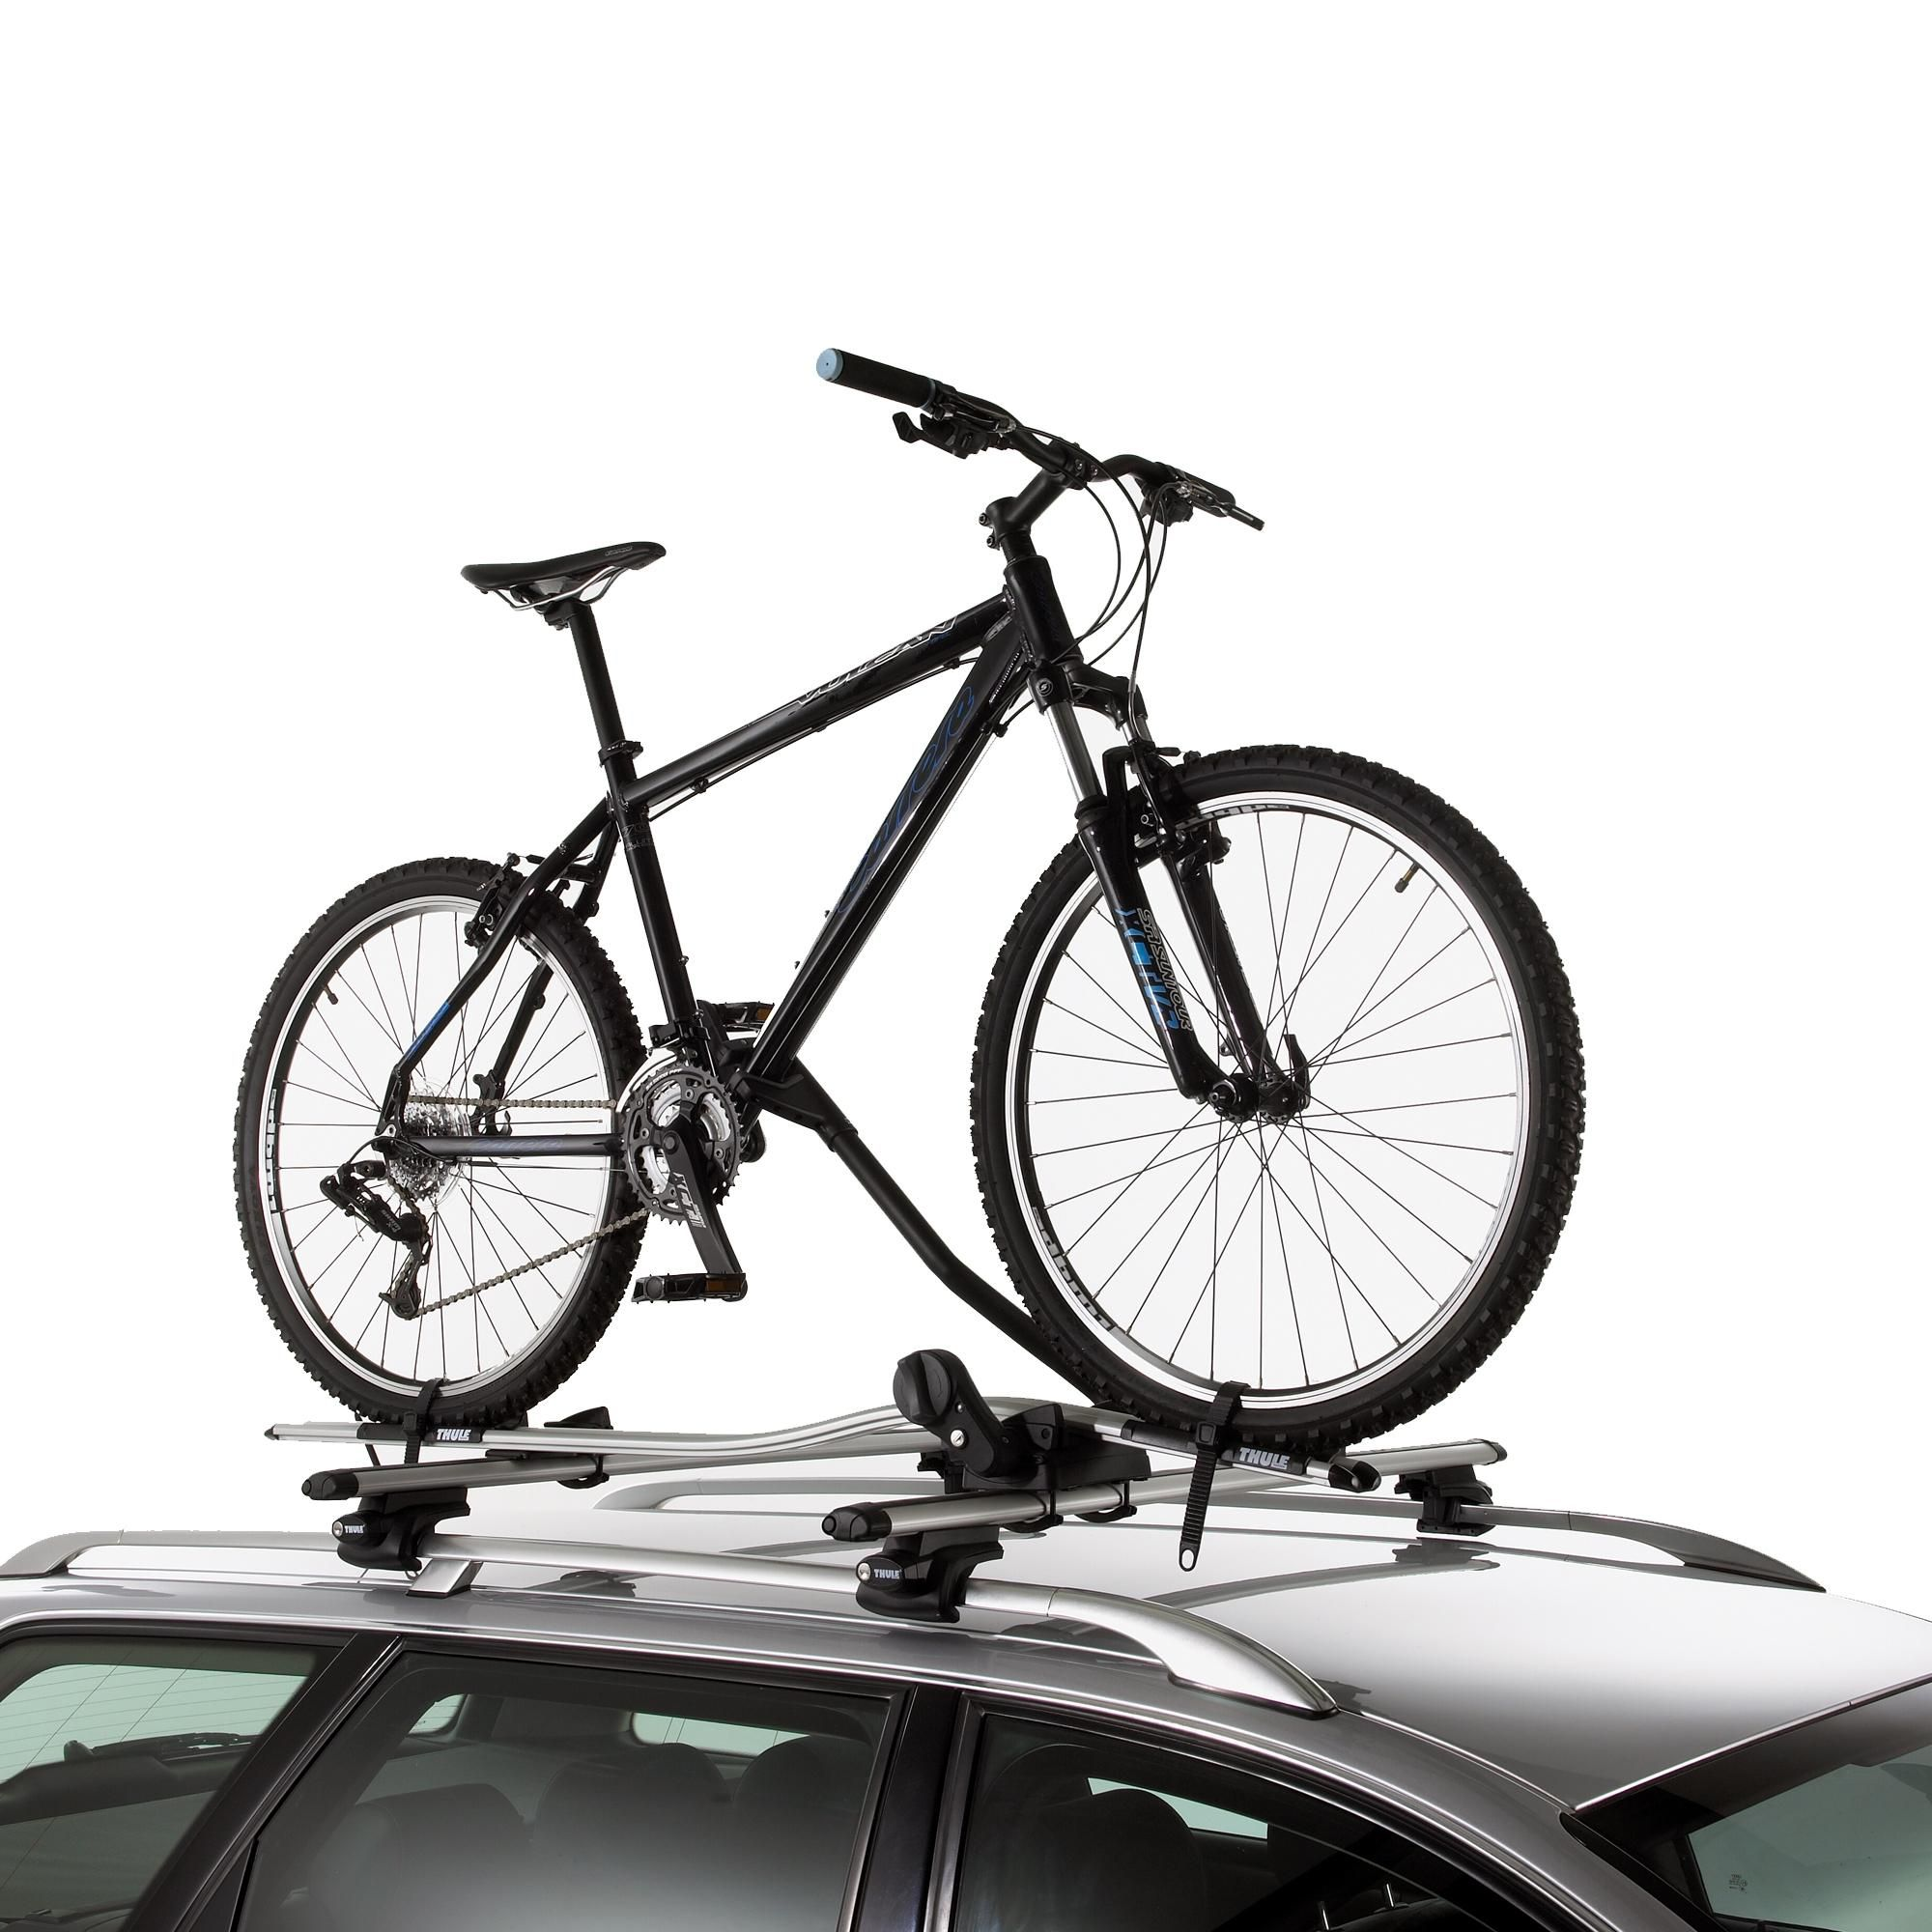 Thule Proride 591 Roof Mount Bike Carrier Is The Elegant And Easy